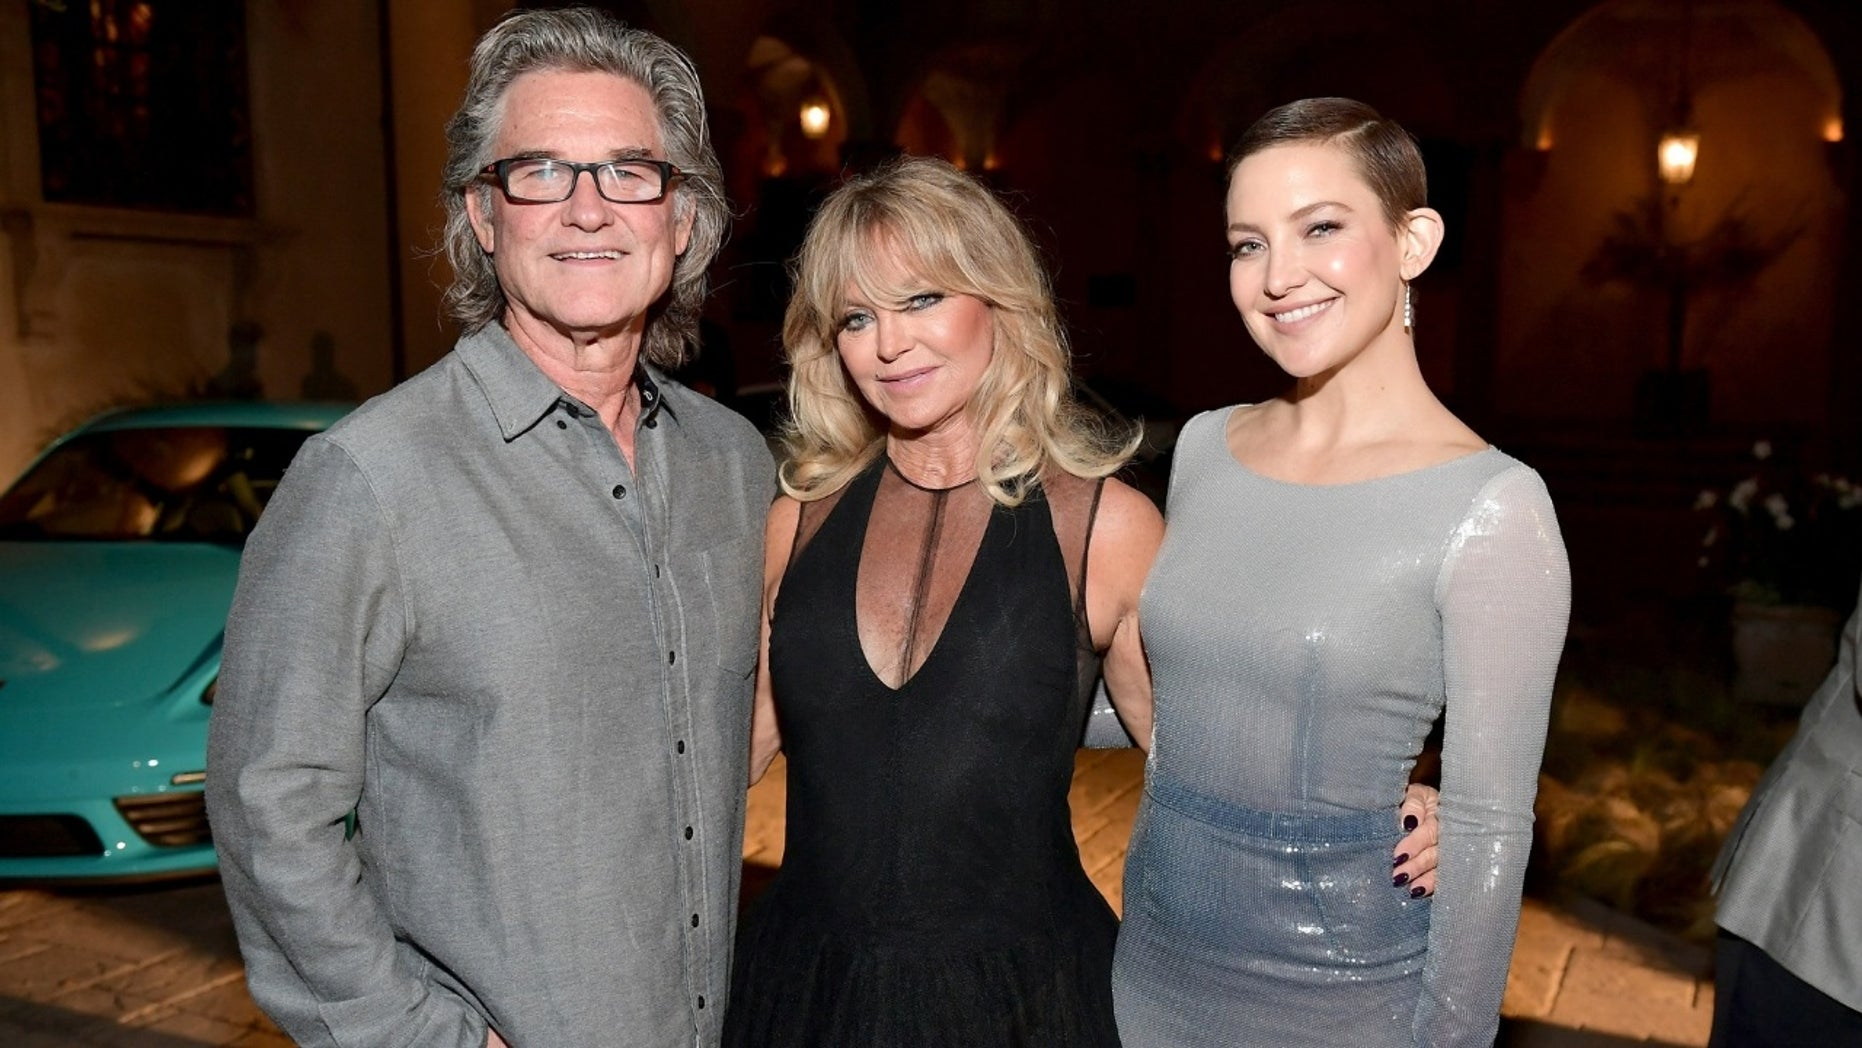 Kate Hudson shares cute snap of Goldie Hawn, Kurt Russell ...